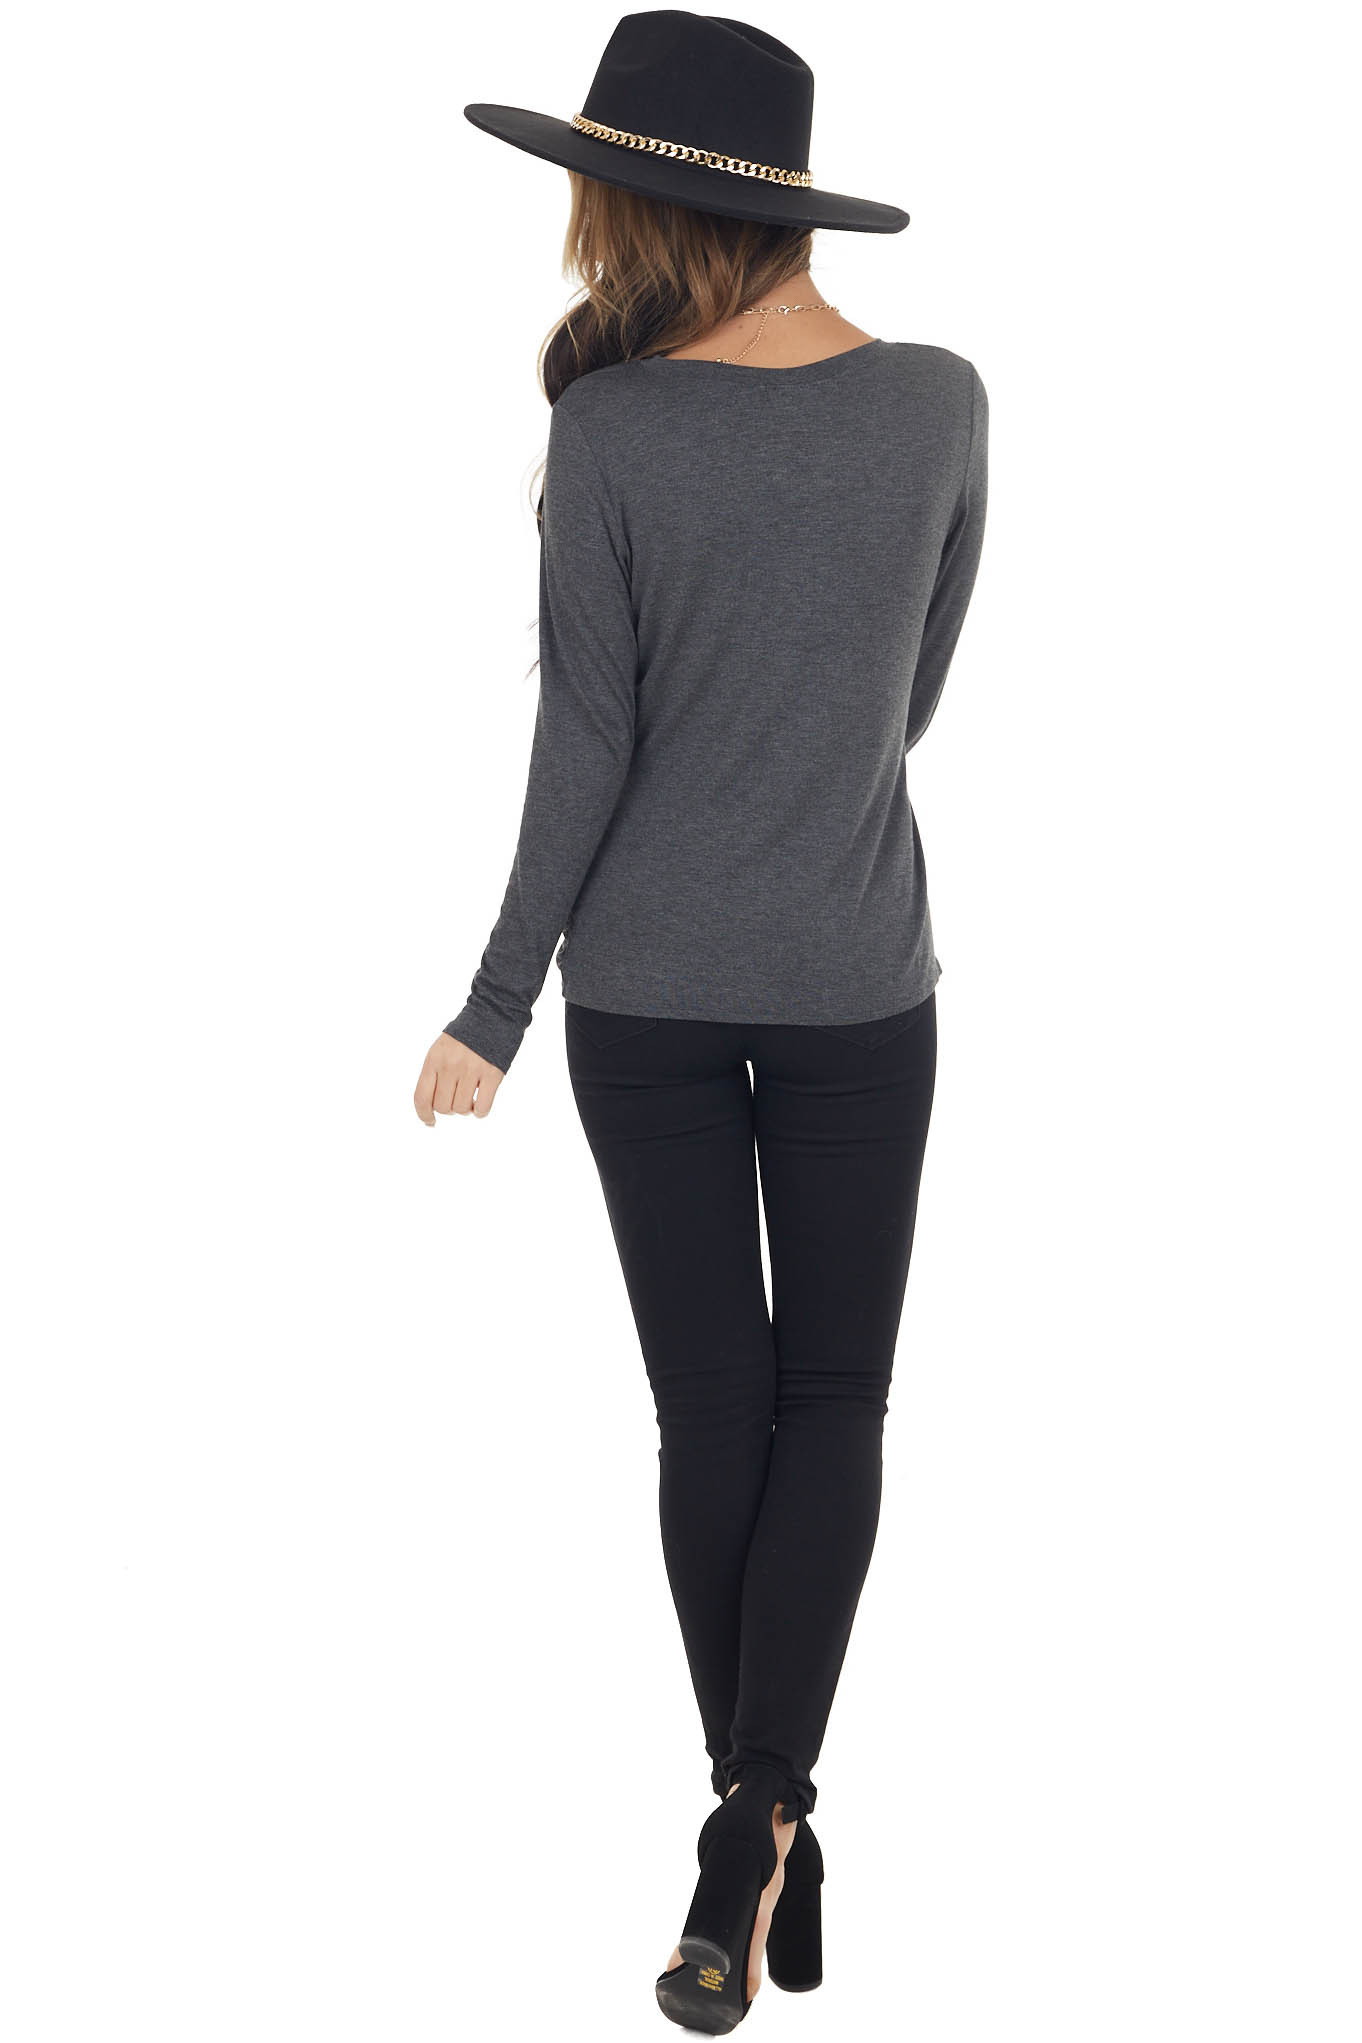 Charcoal High Low Draped Knit Top with Round Neckline